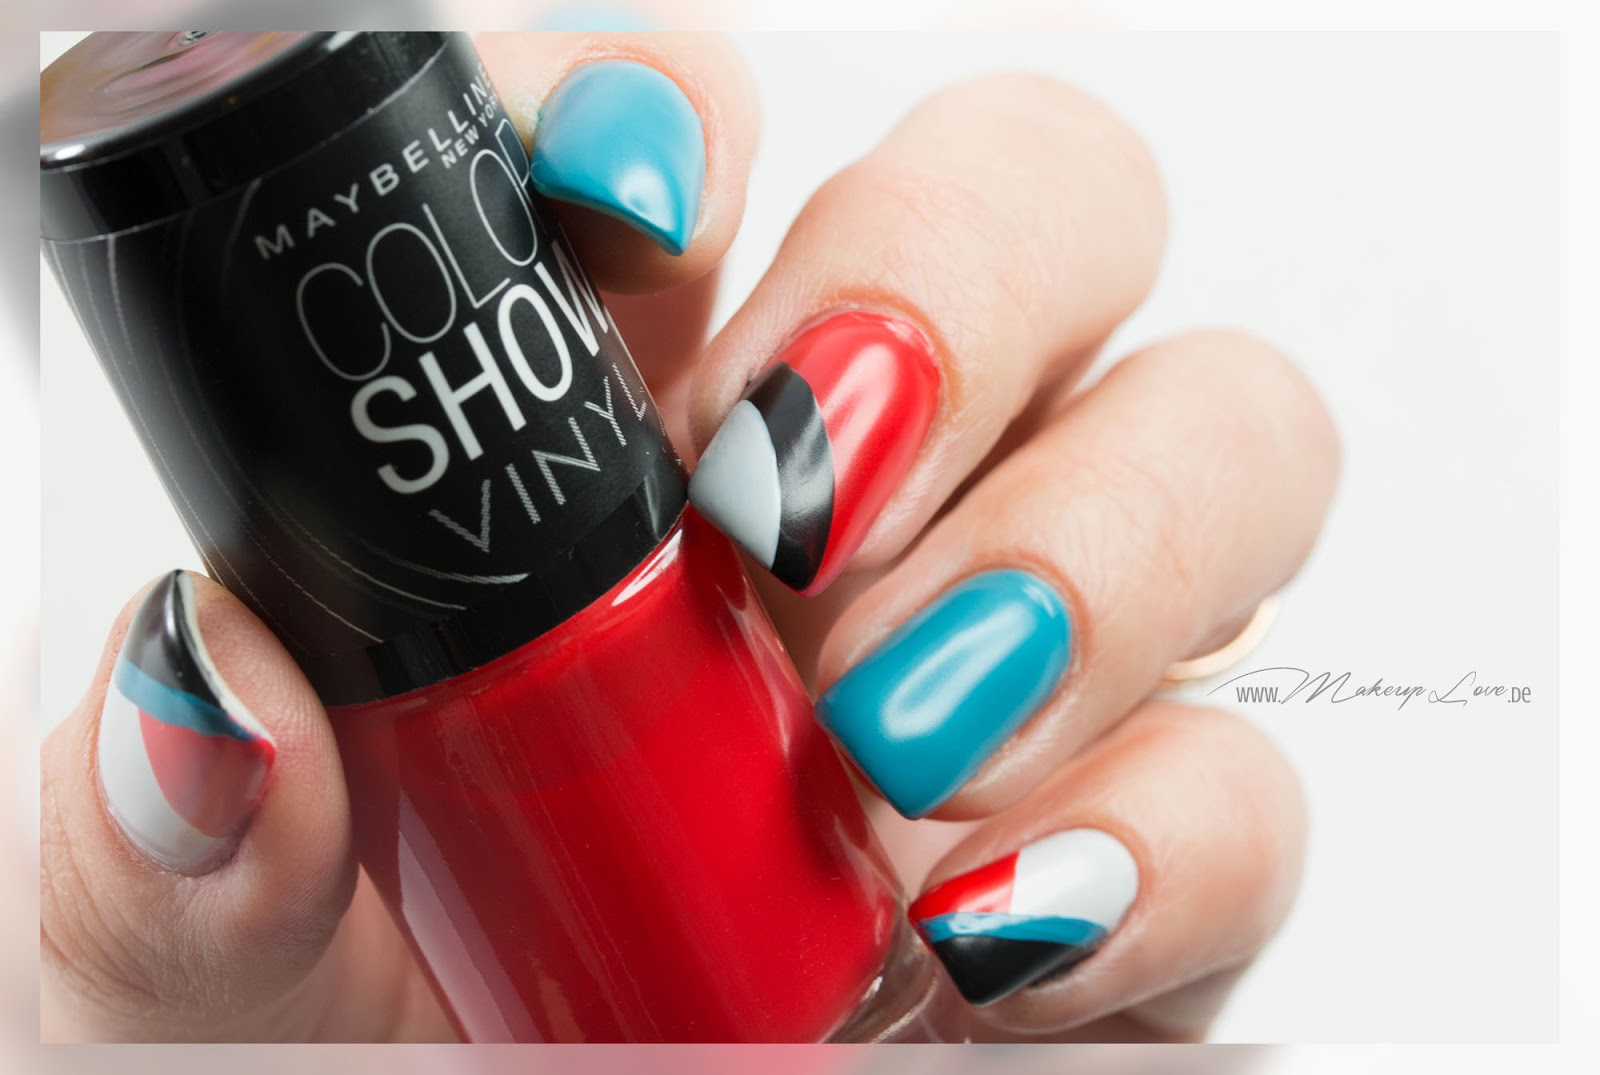 Maybelline coloshow vinyl nagellacke kollektion Naildesign